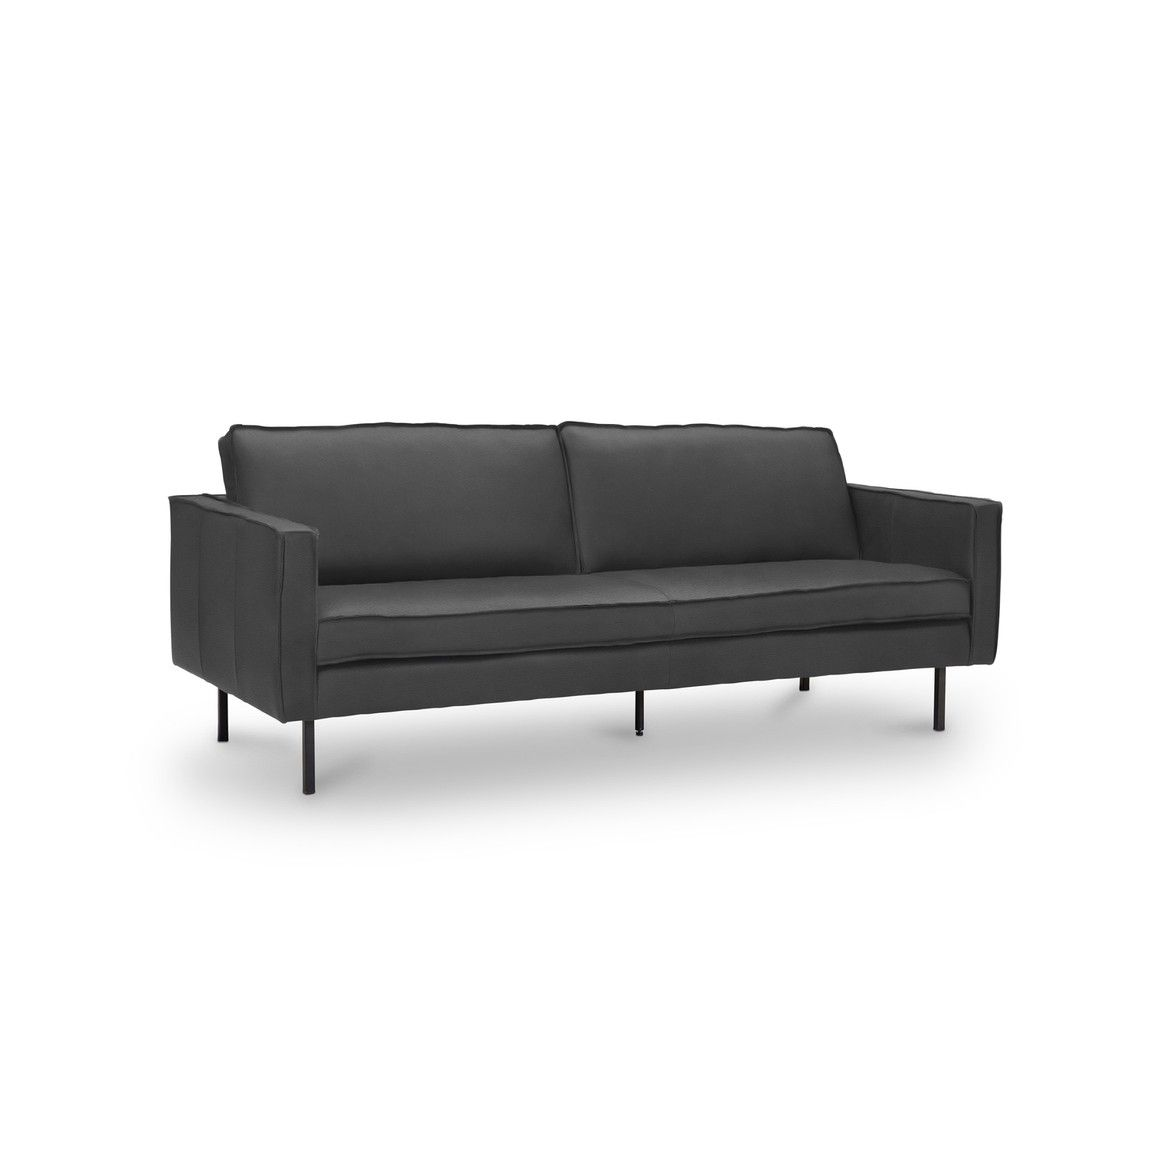 Bettsofa Interio Ch Texada Berlin Berlin Sofa Outdoor Decor Und Outdoor Sofa